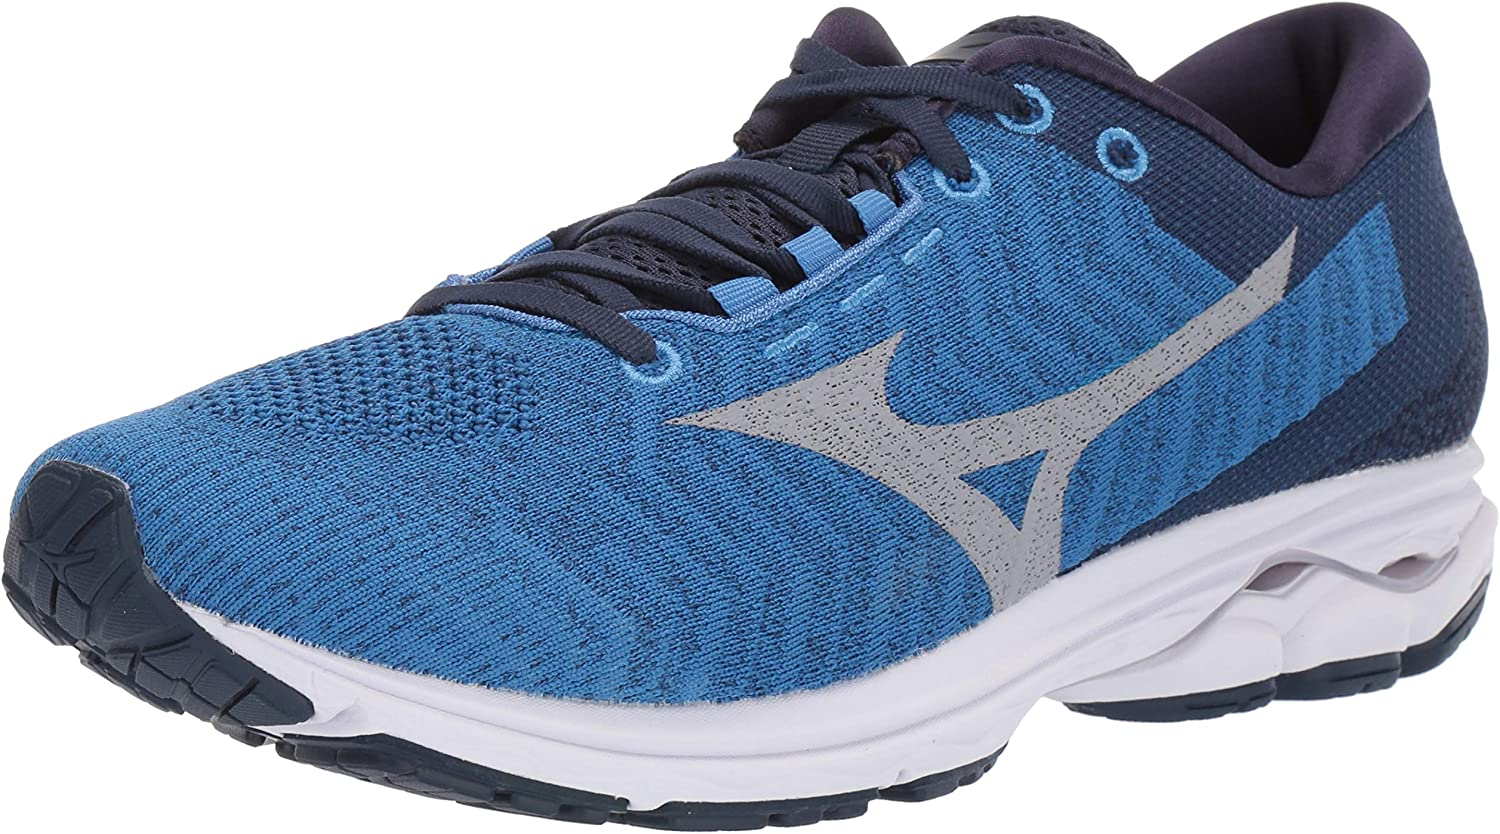 Men's Mizuno Wave Rider 18